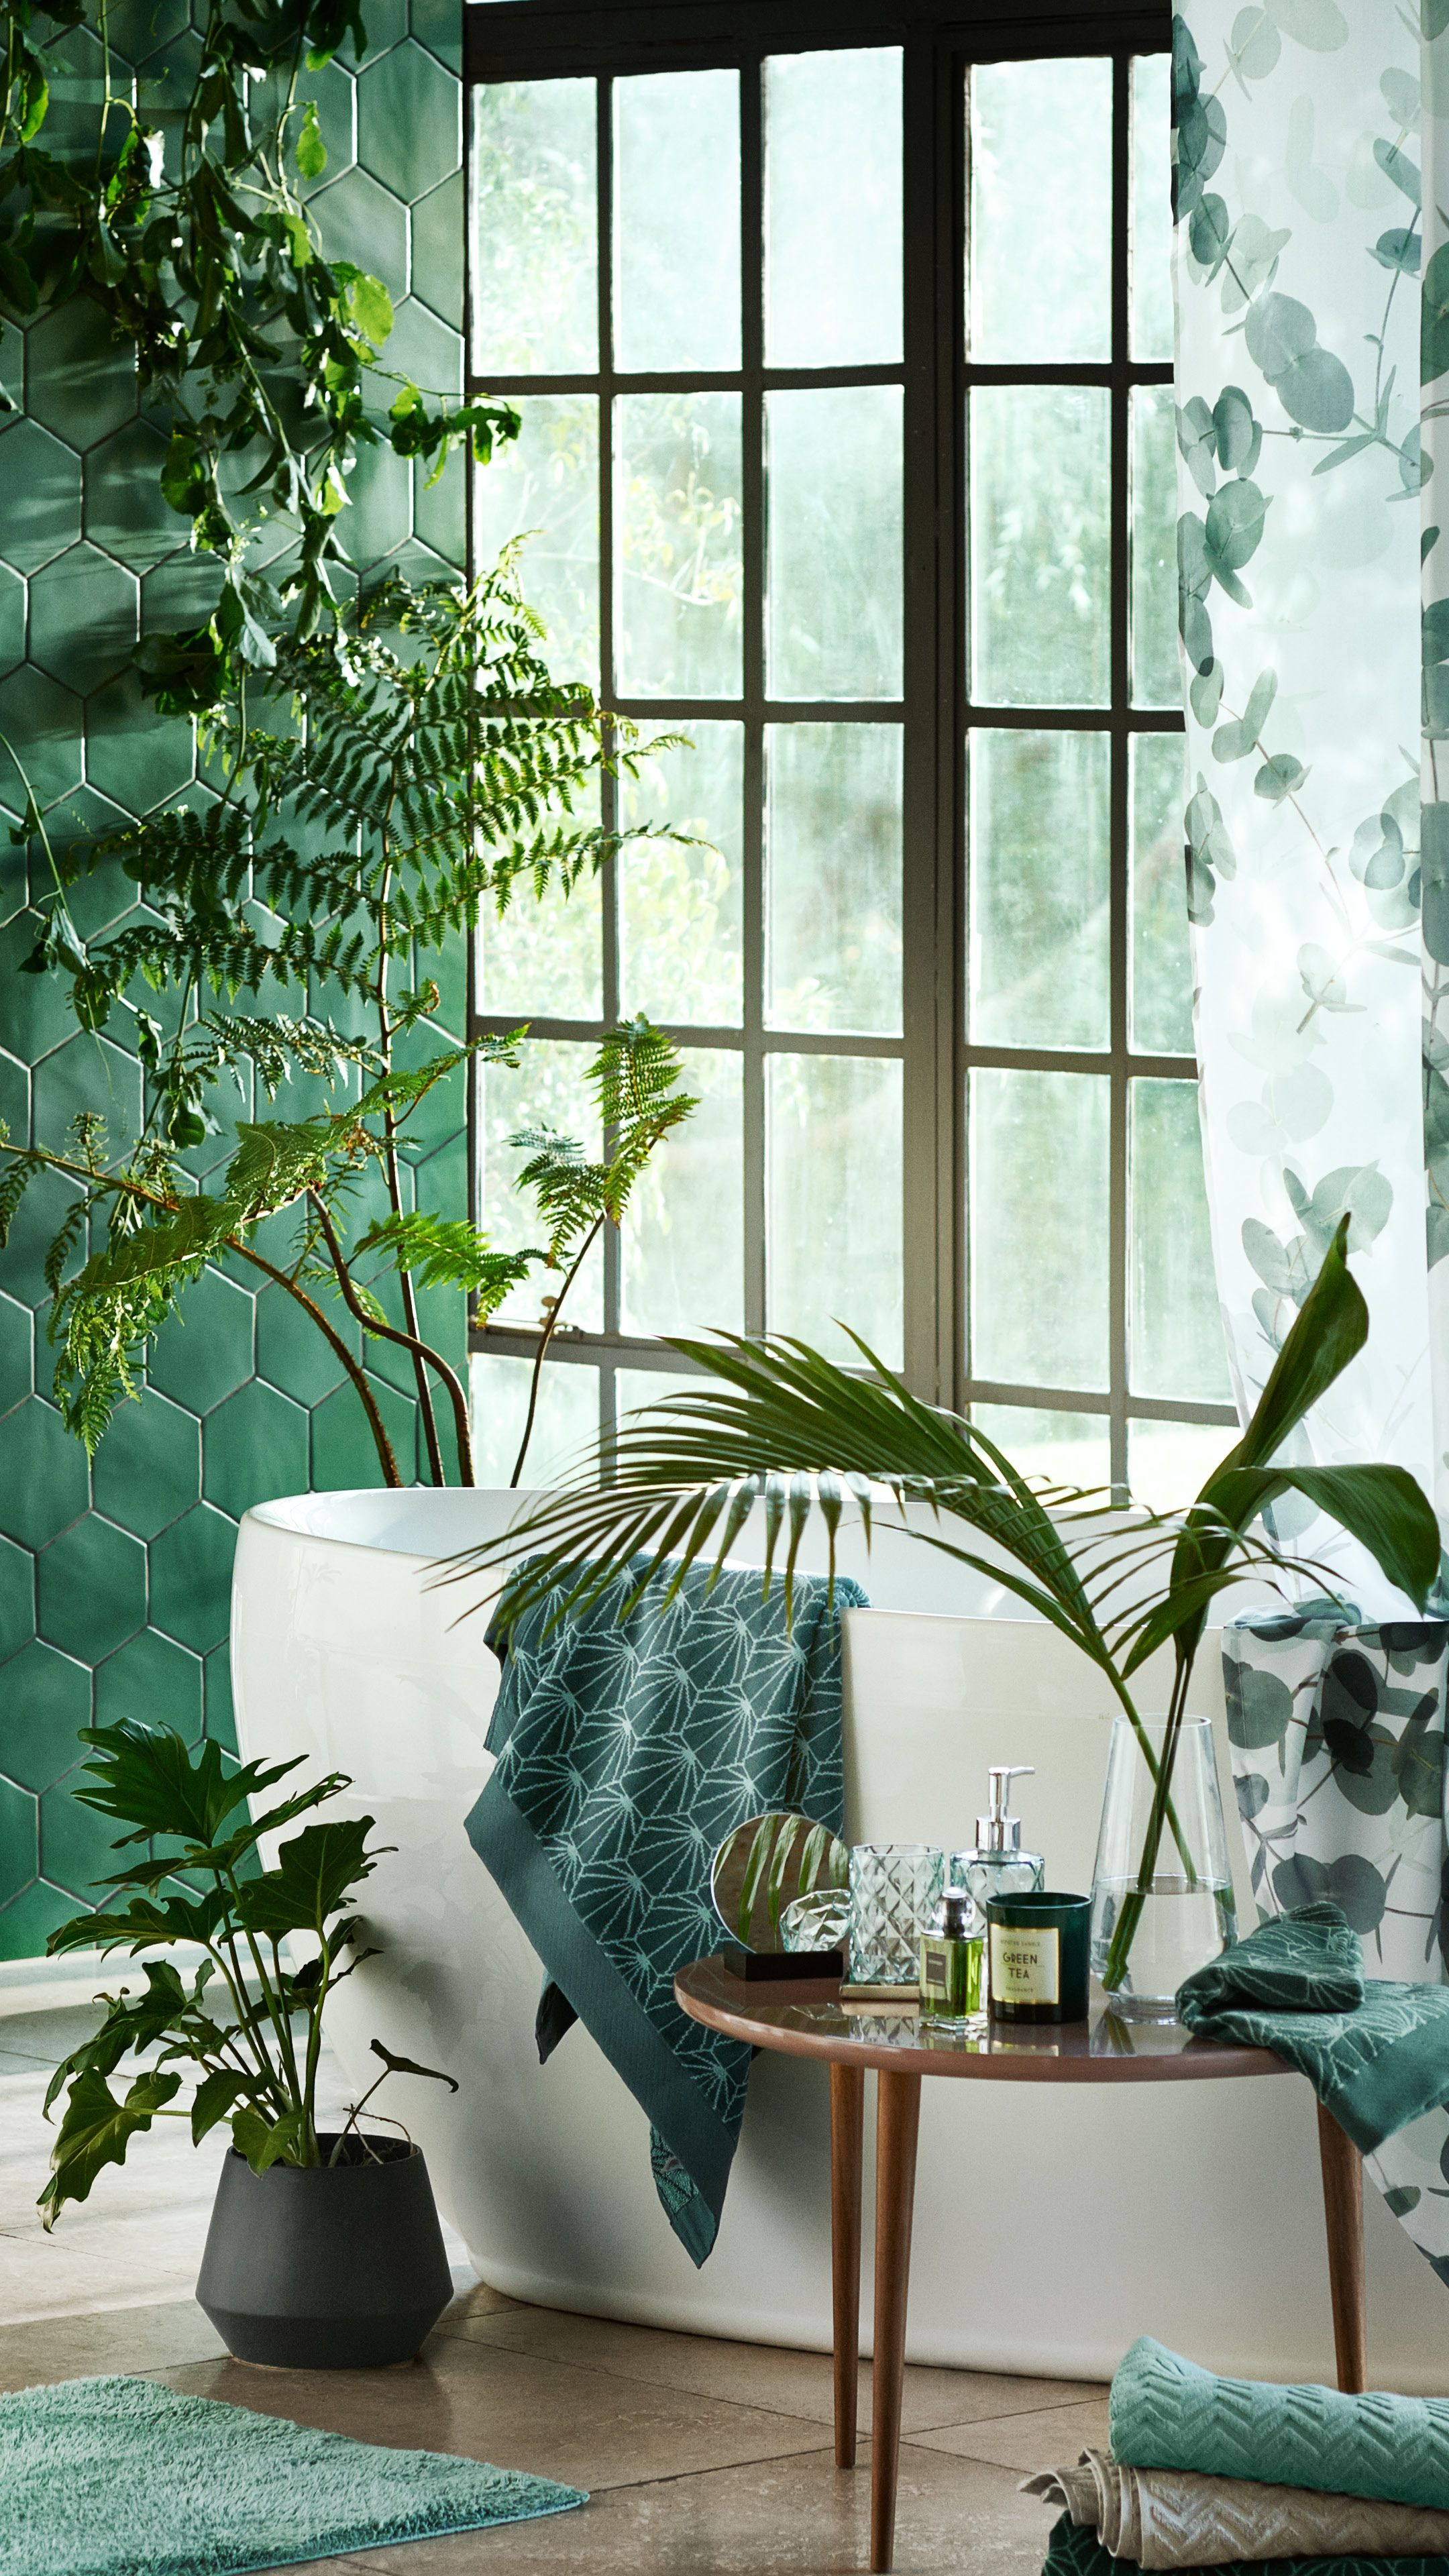 Delft H&m Liven Up Any Room With New Home Accessories And Green Tones H M